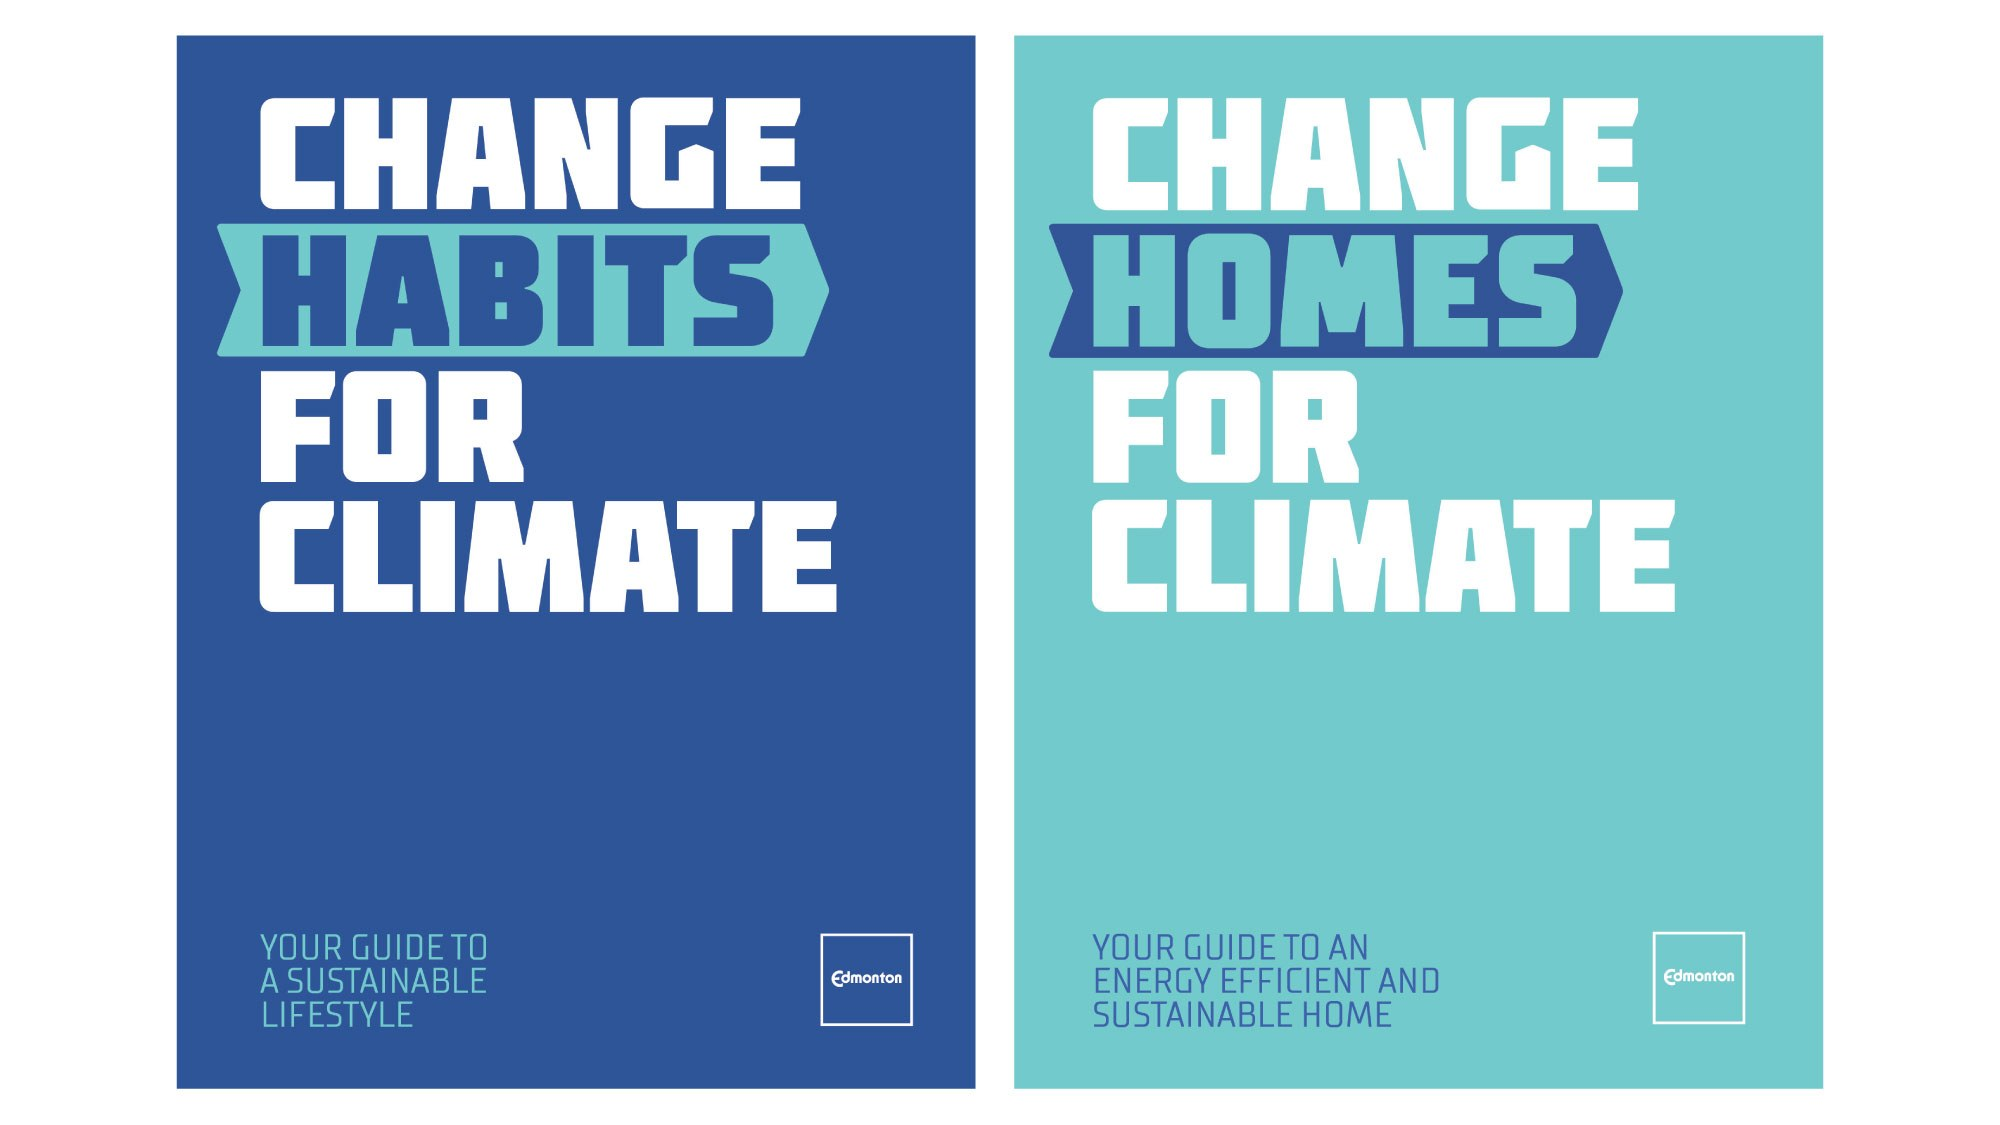 cover page of the Change Habits for Climate guide and the Change Homes for Climate guide